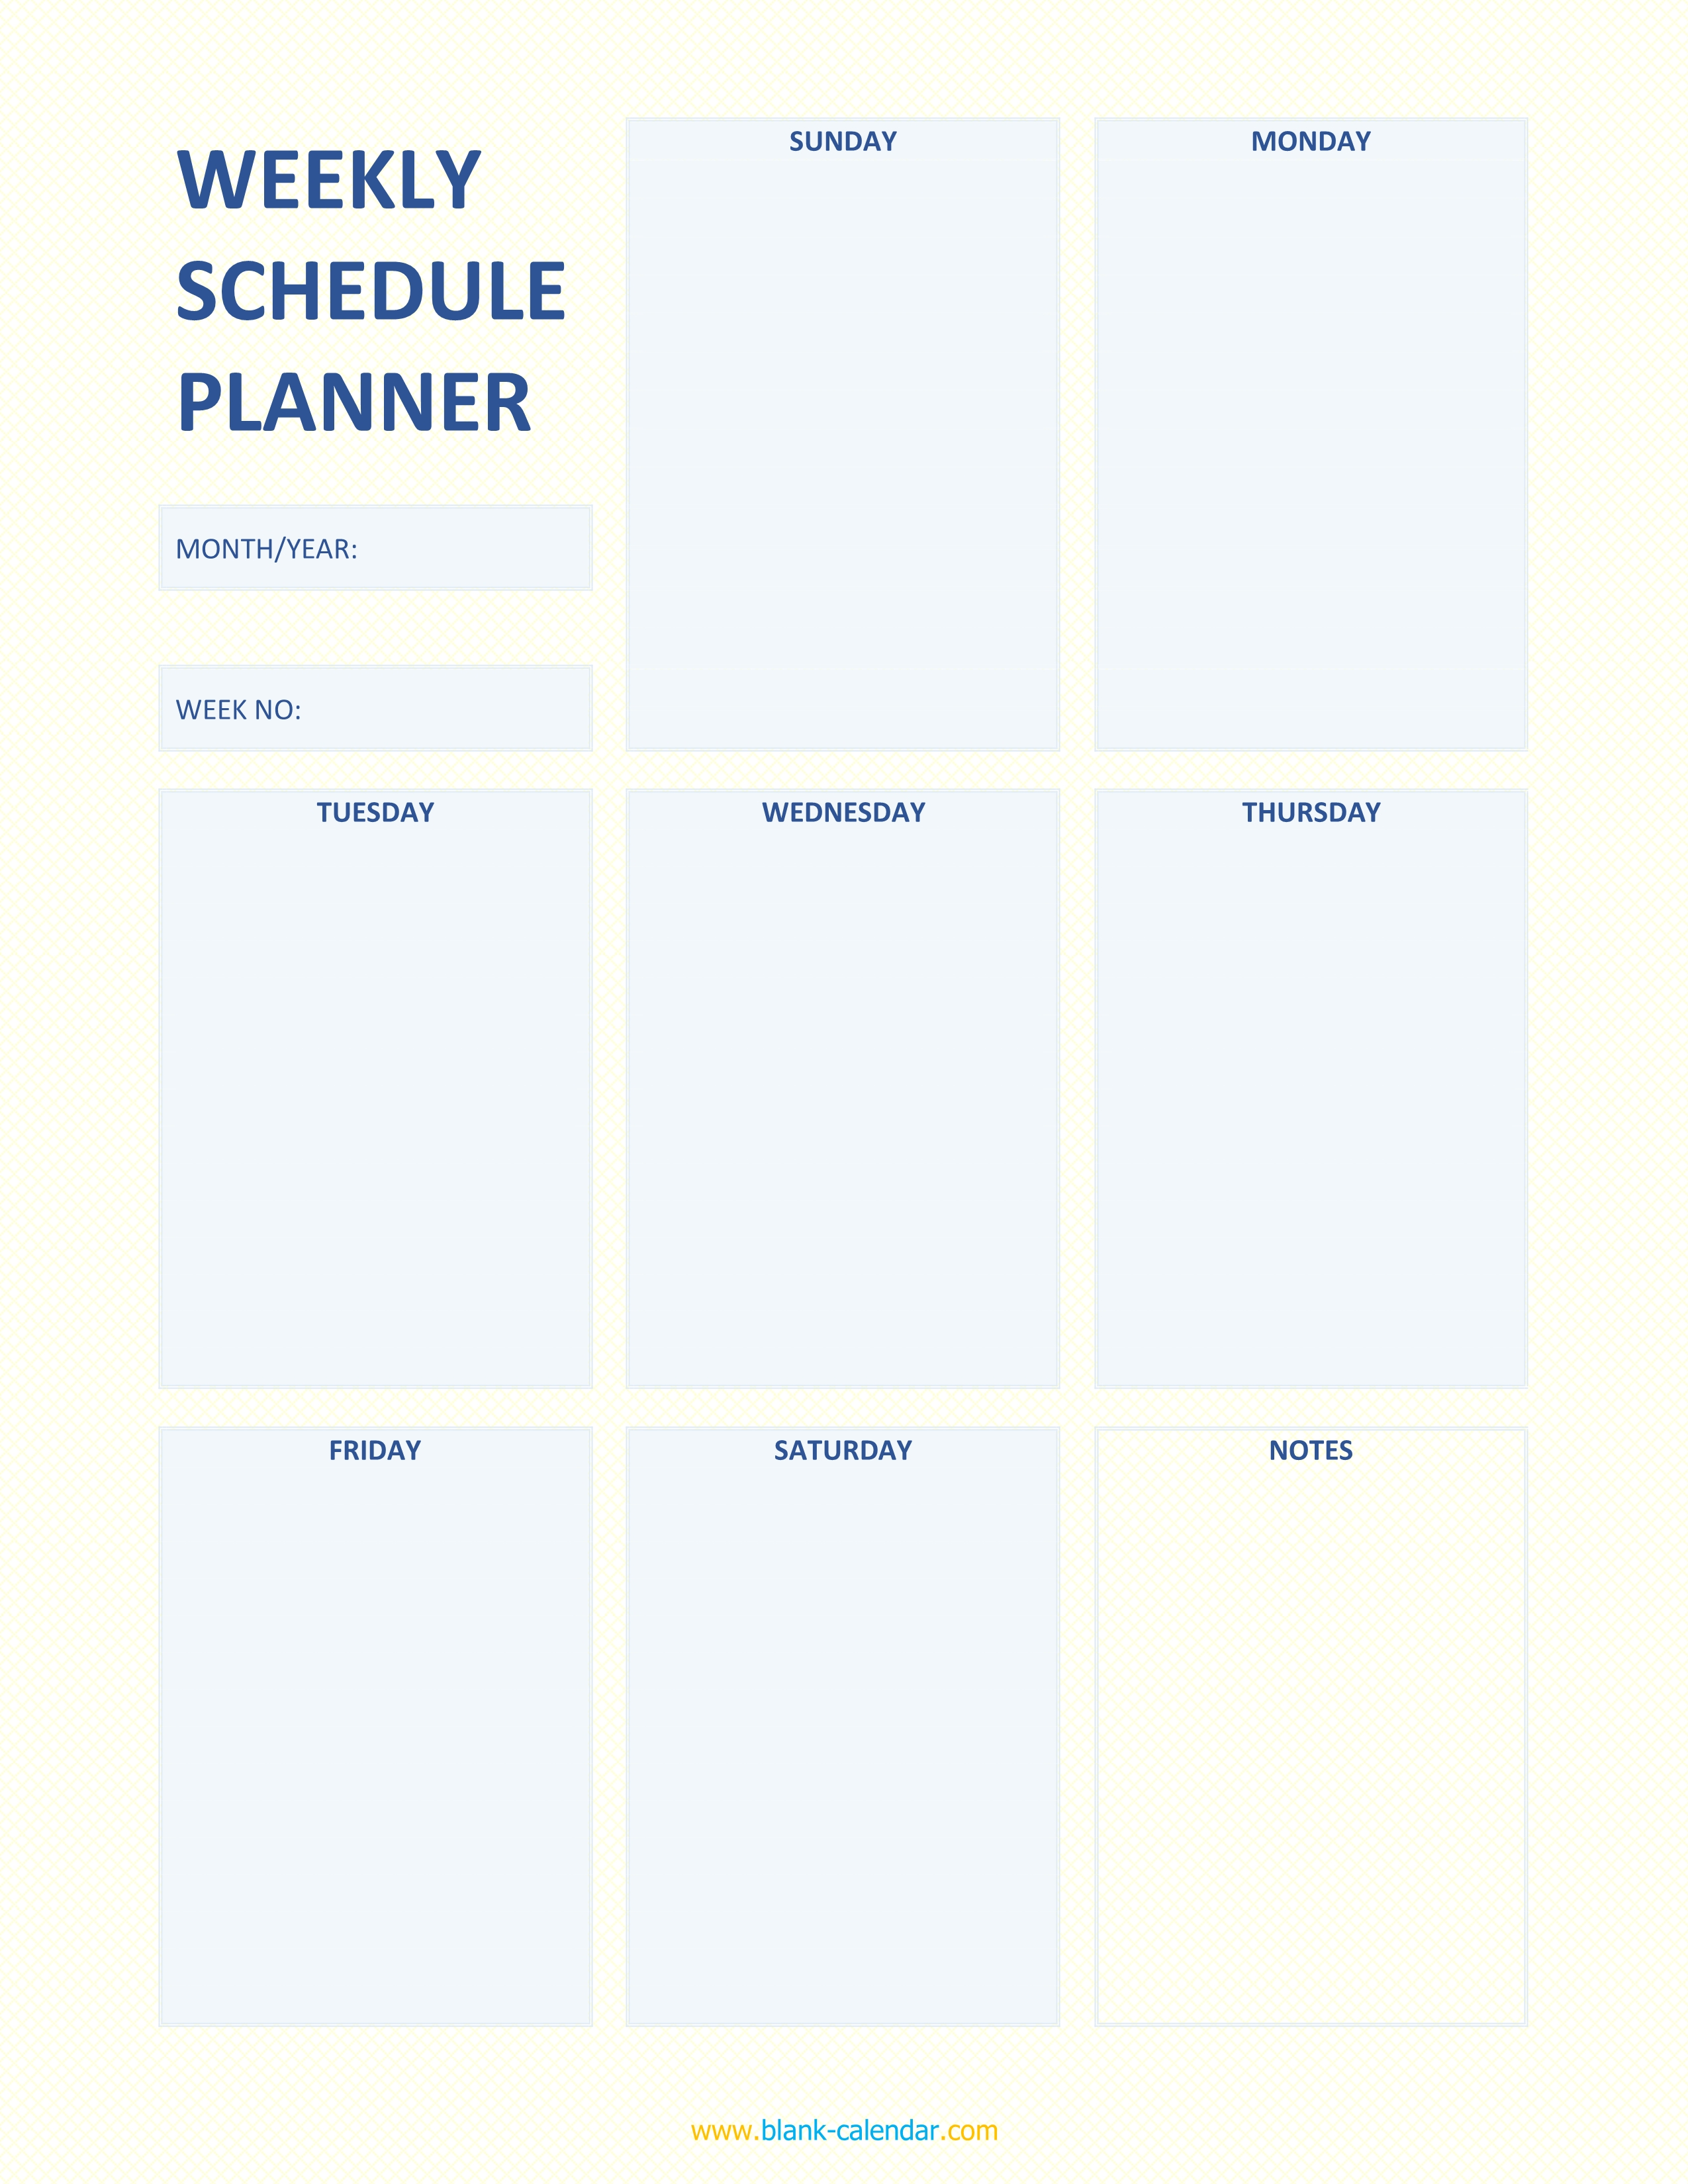 Weekly Schedule Planner Templates Word Excel Pdf